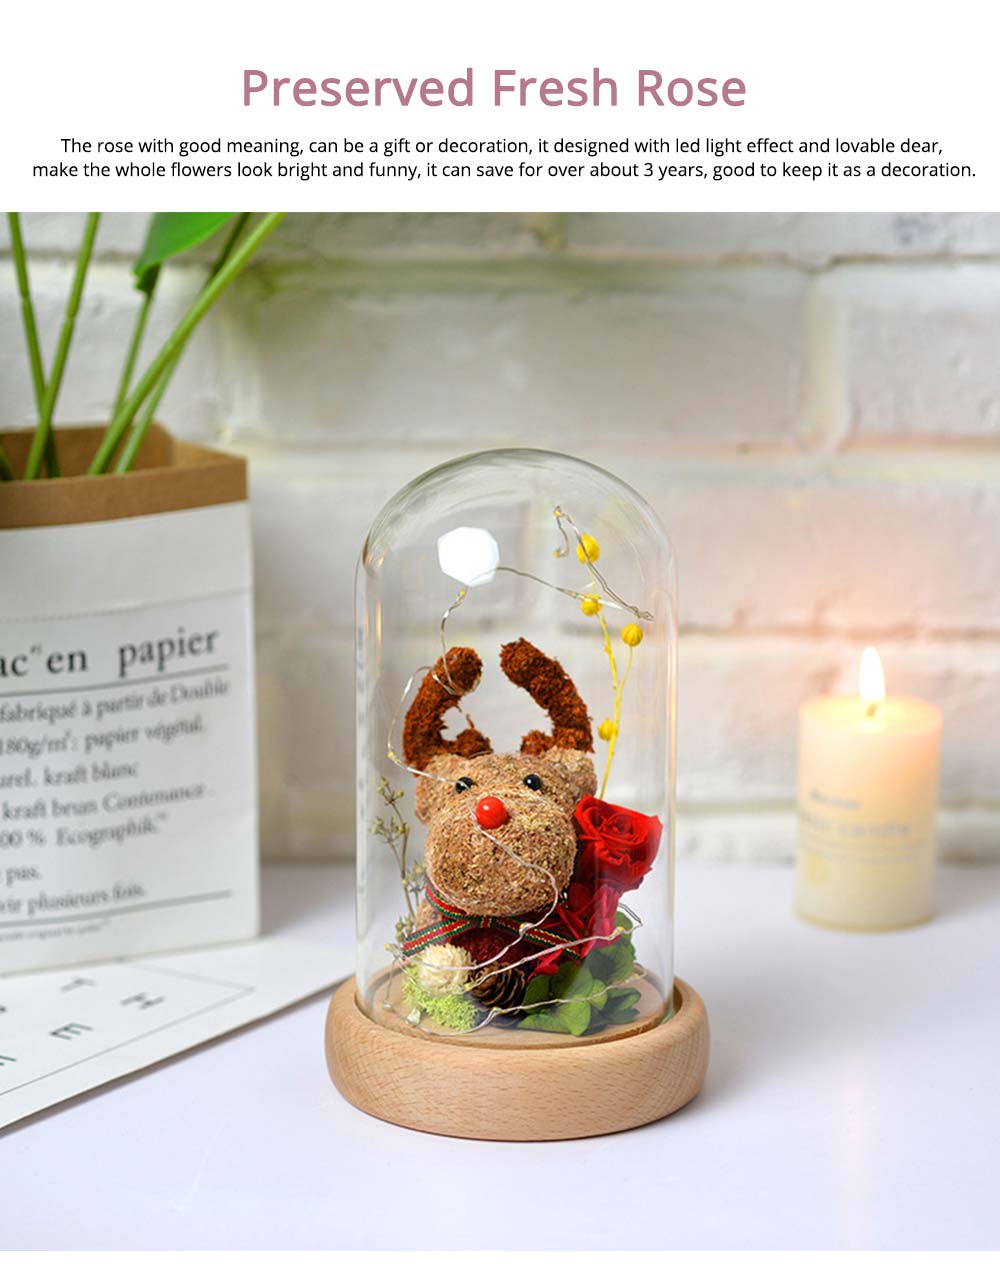 Preserved Flowers In Glass, Romantic Valentine's Day Christmas Gift Preserved Fresh Rose with Deer Decoration for Girl 0